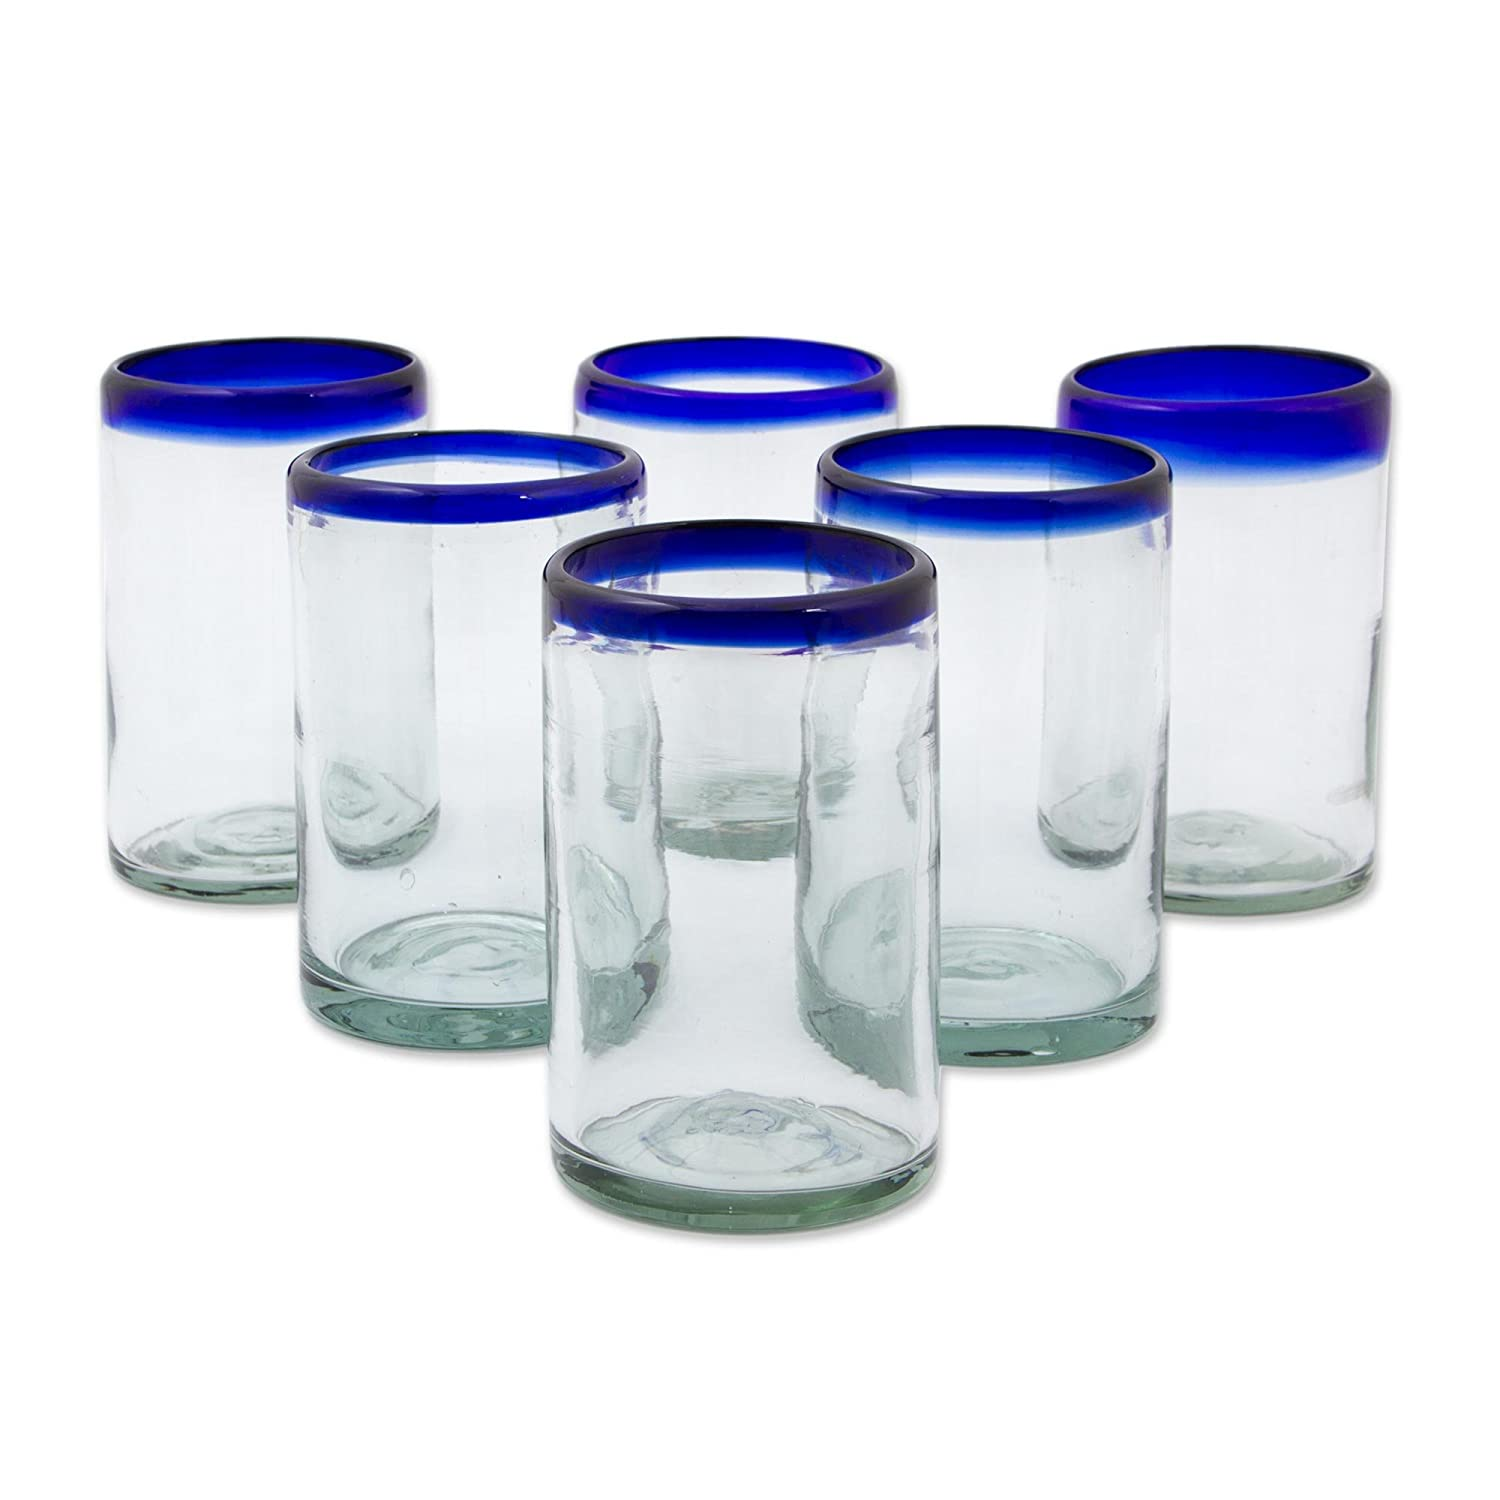 NOVICA Artisan Crafted Hand Blown Clear Blue Rim Recycled Glass Juice Glasses, 14 oz. 'Classic' (set of 6) 11461